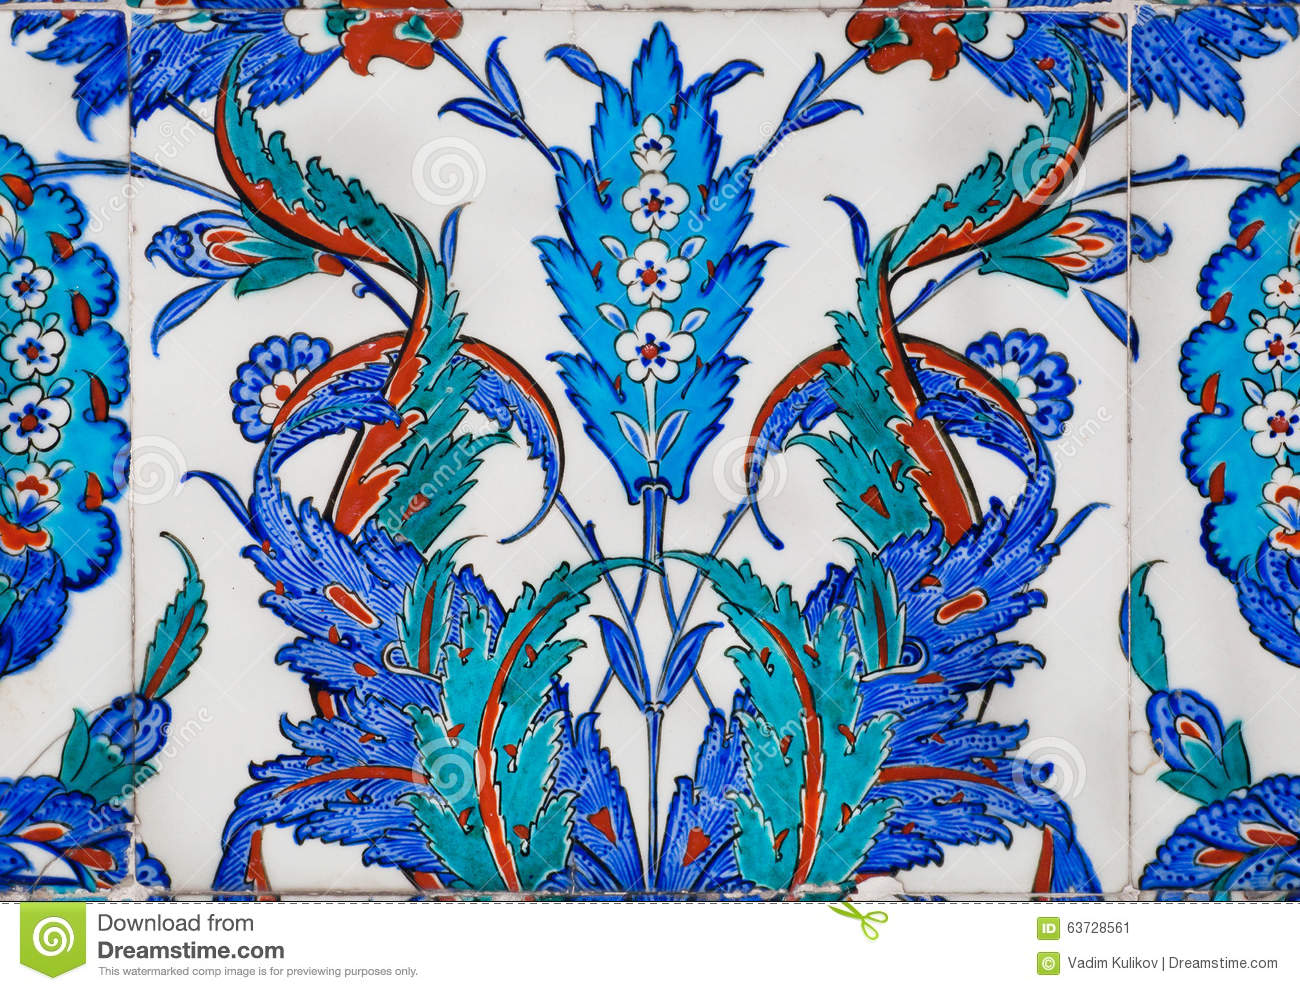 Blue floral patterns of 16th century tiles in antique turkish style royalty free stock photo shiifo